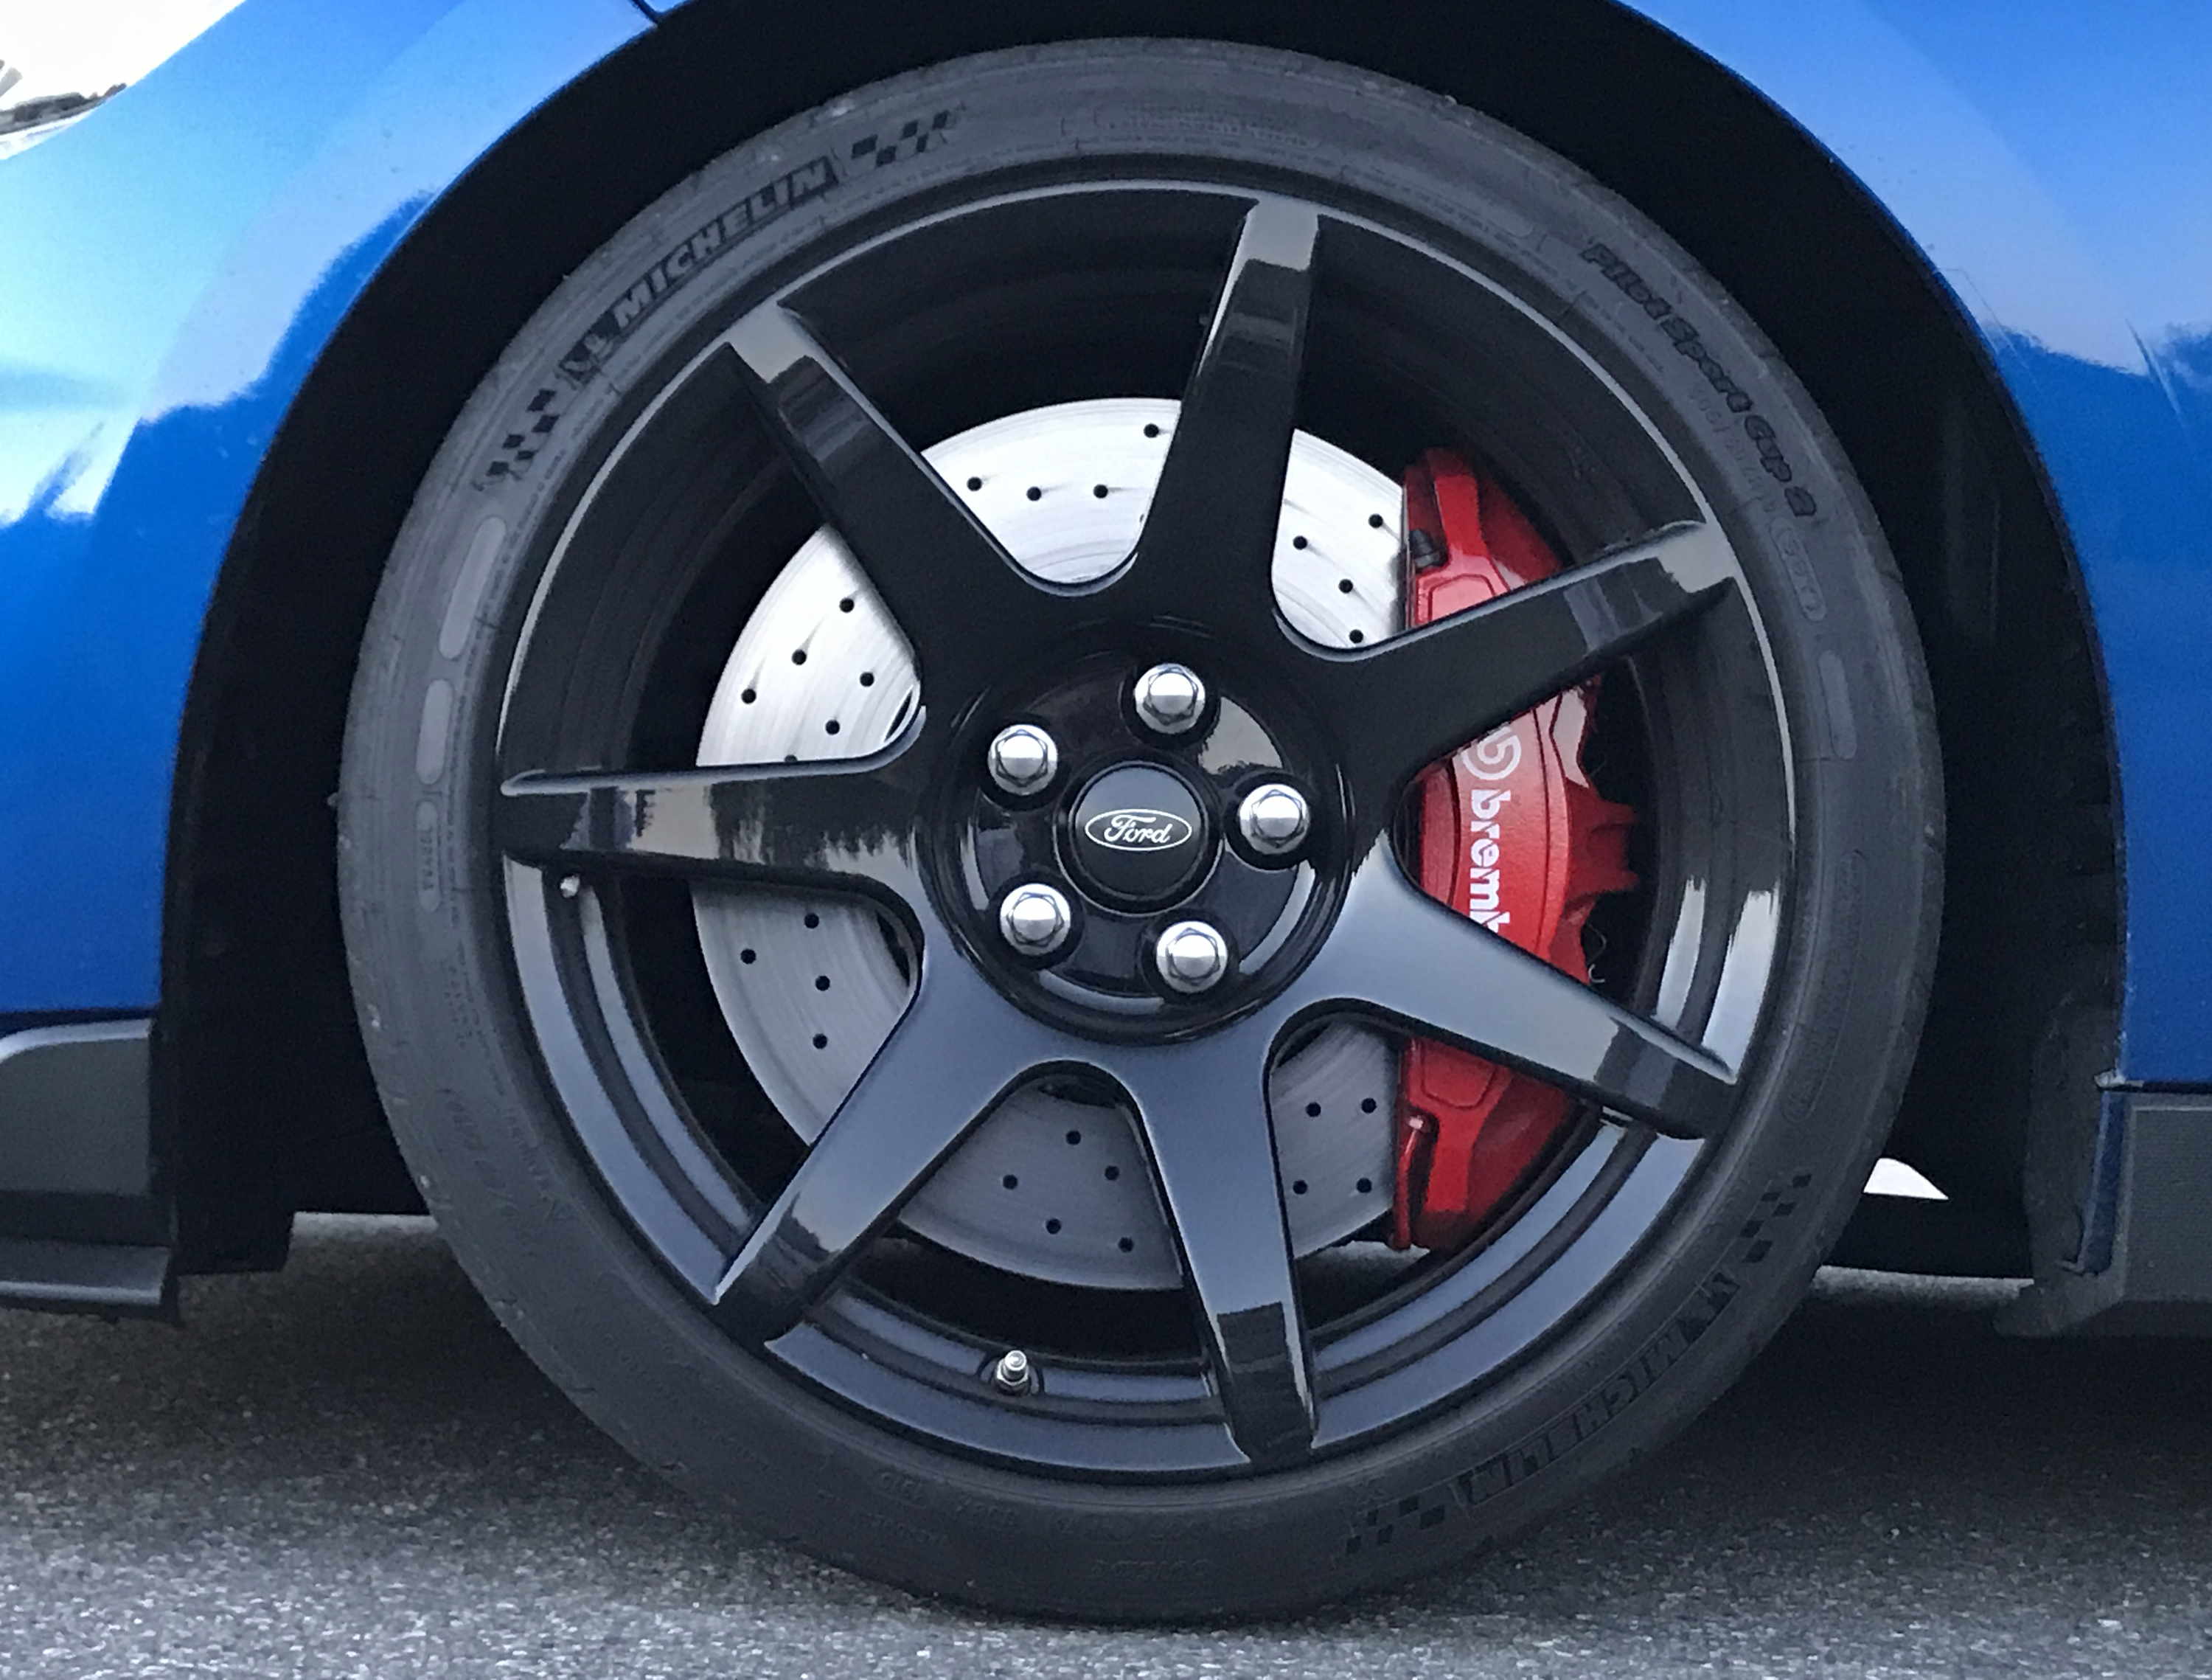 2017 Ford Mustang Shelby GT350R Wheel